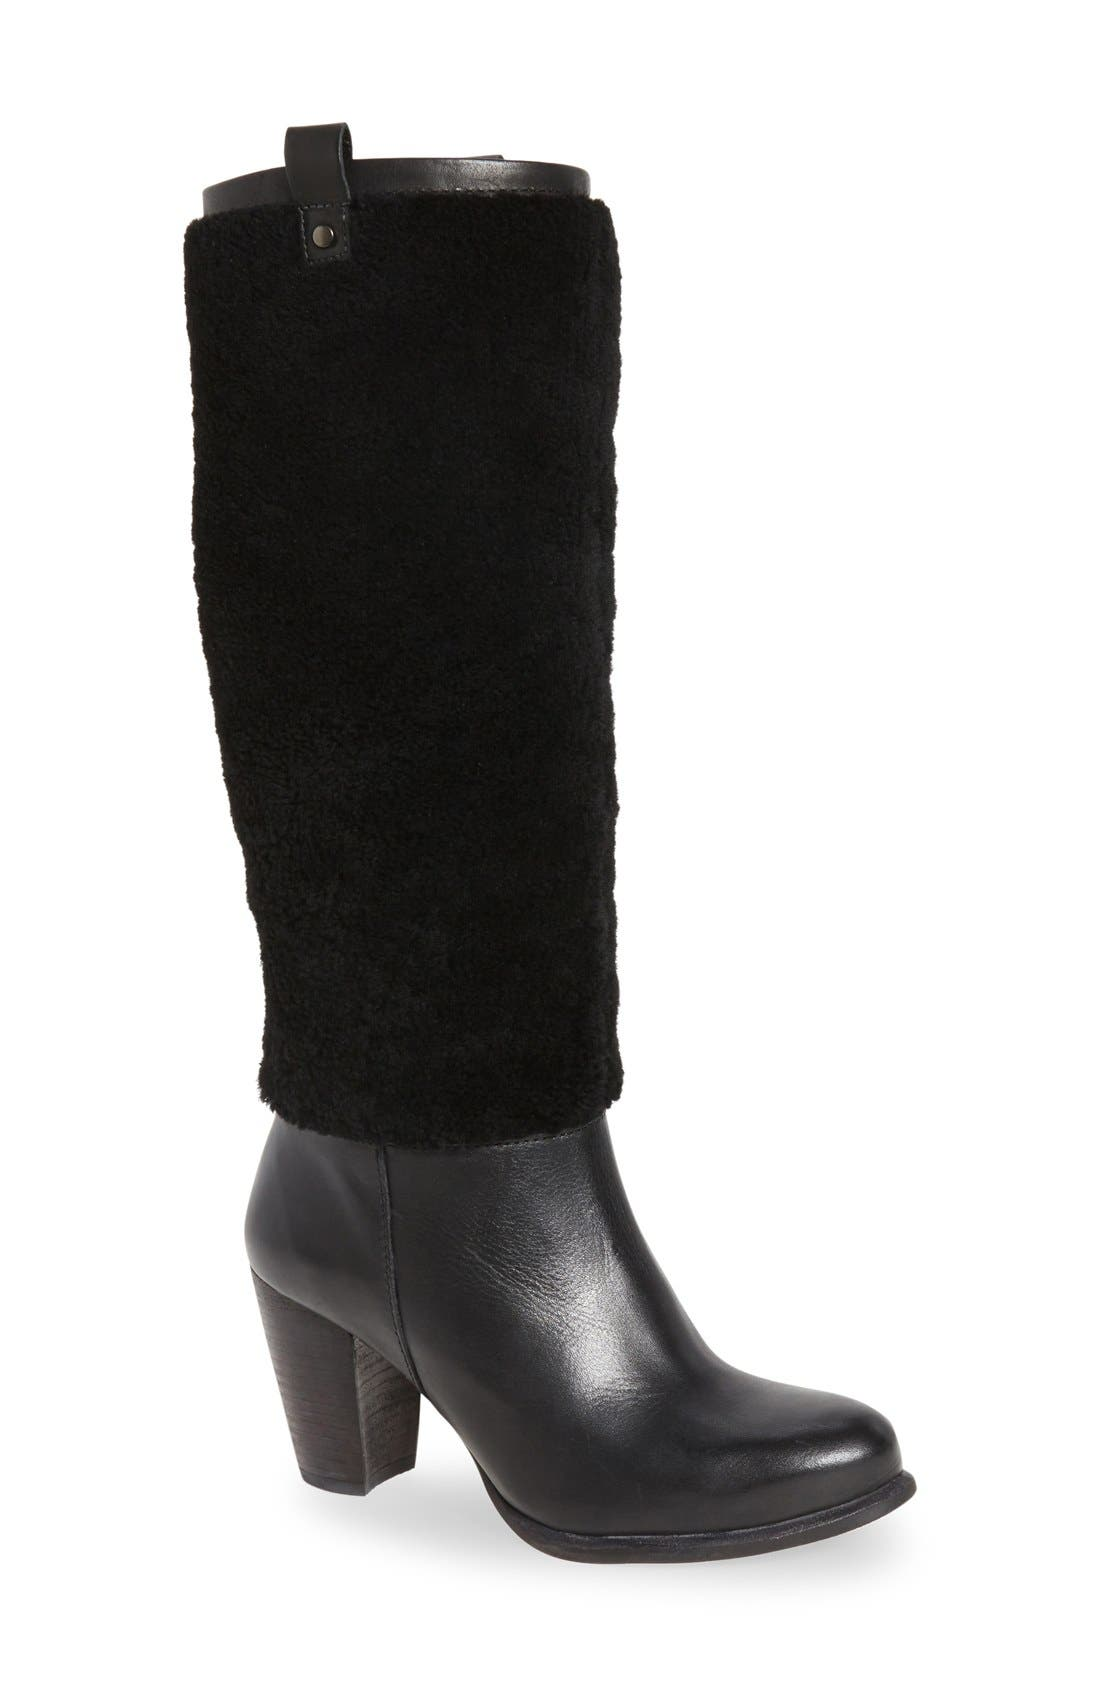 Alternate Image 1 Selected - UGG® Ava Genuine Shearling Boot (Women)